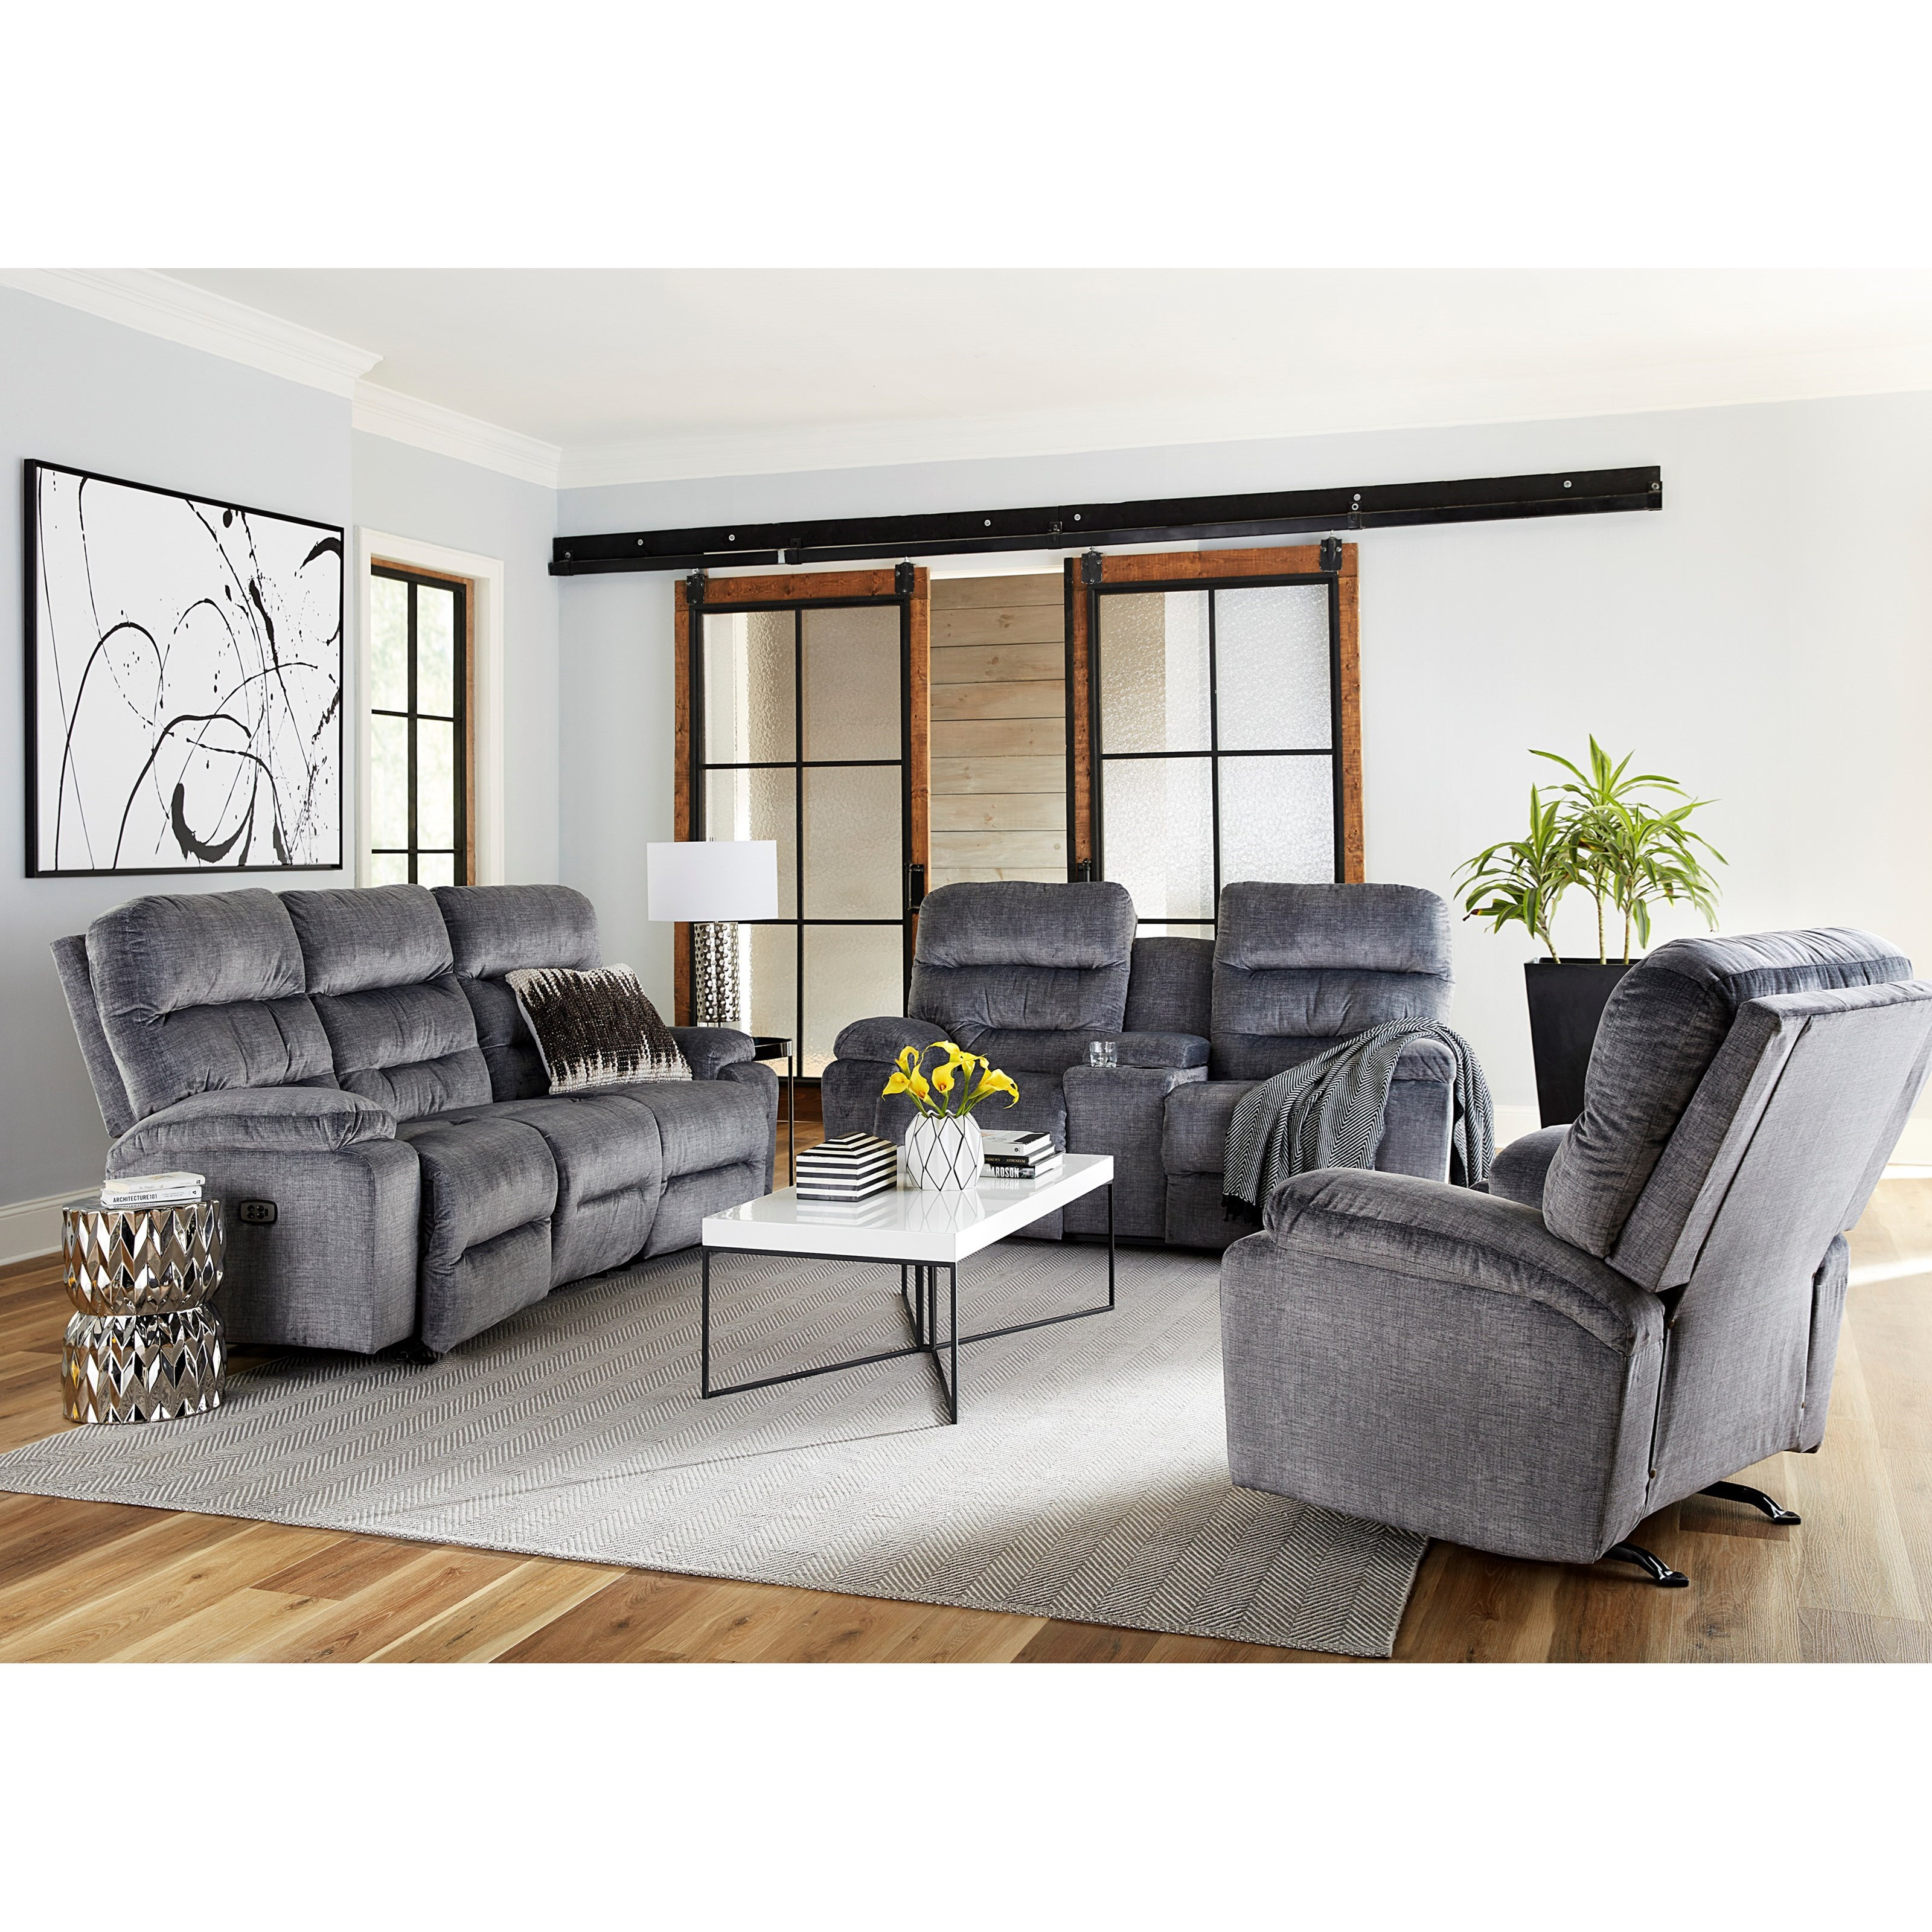 Ryson Reclining Living Room Group  by Best Home Furnishings at Best Home Furnishings